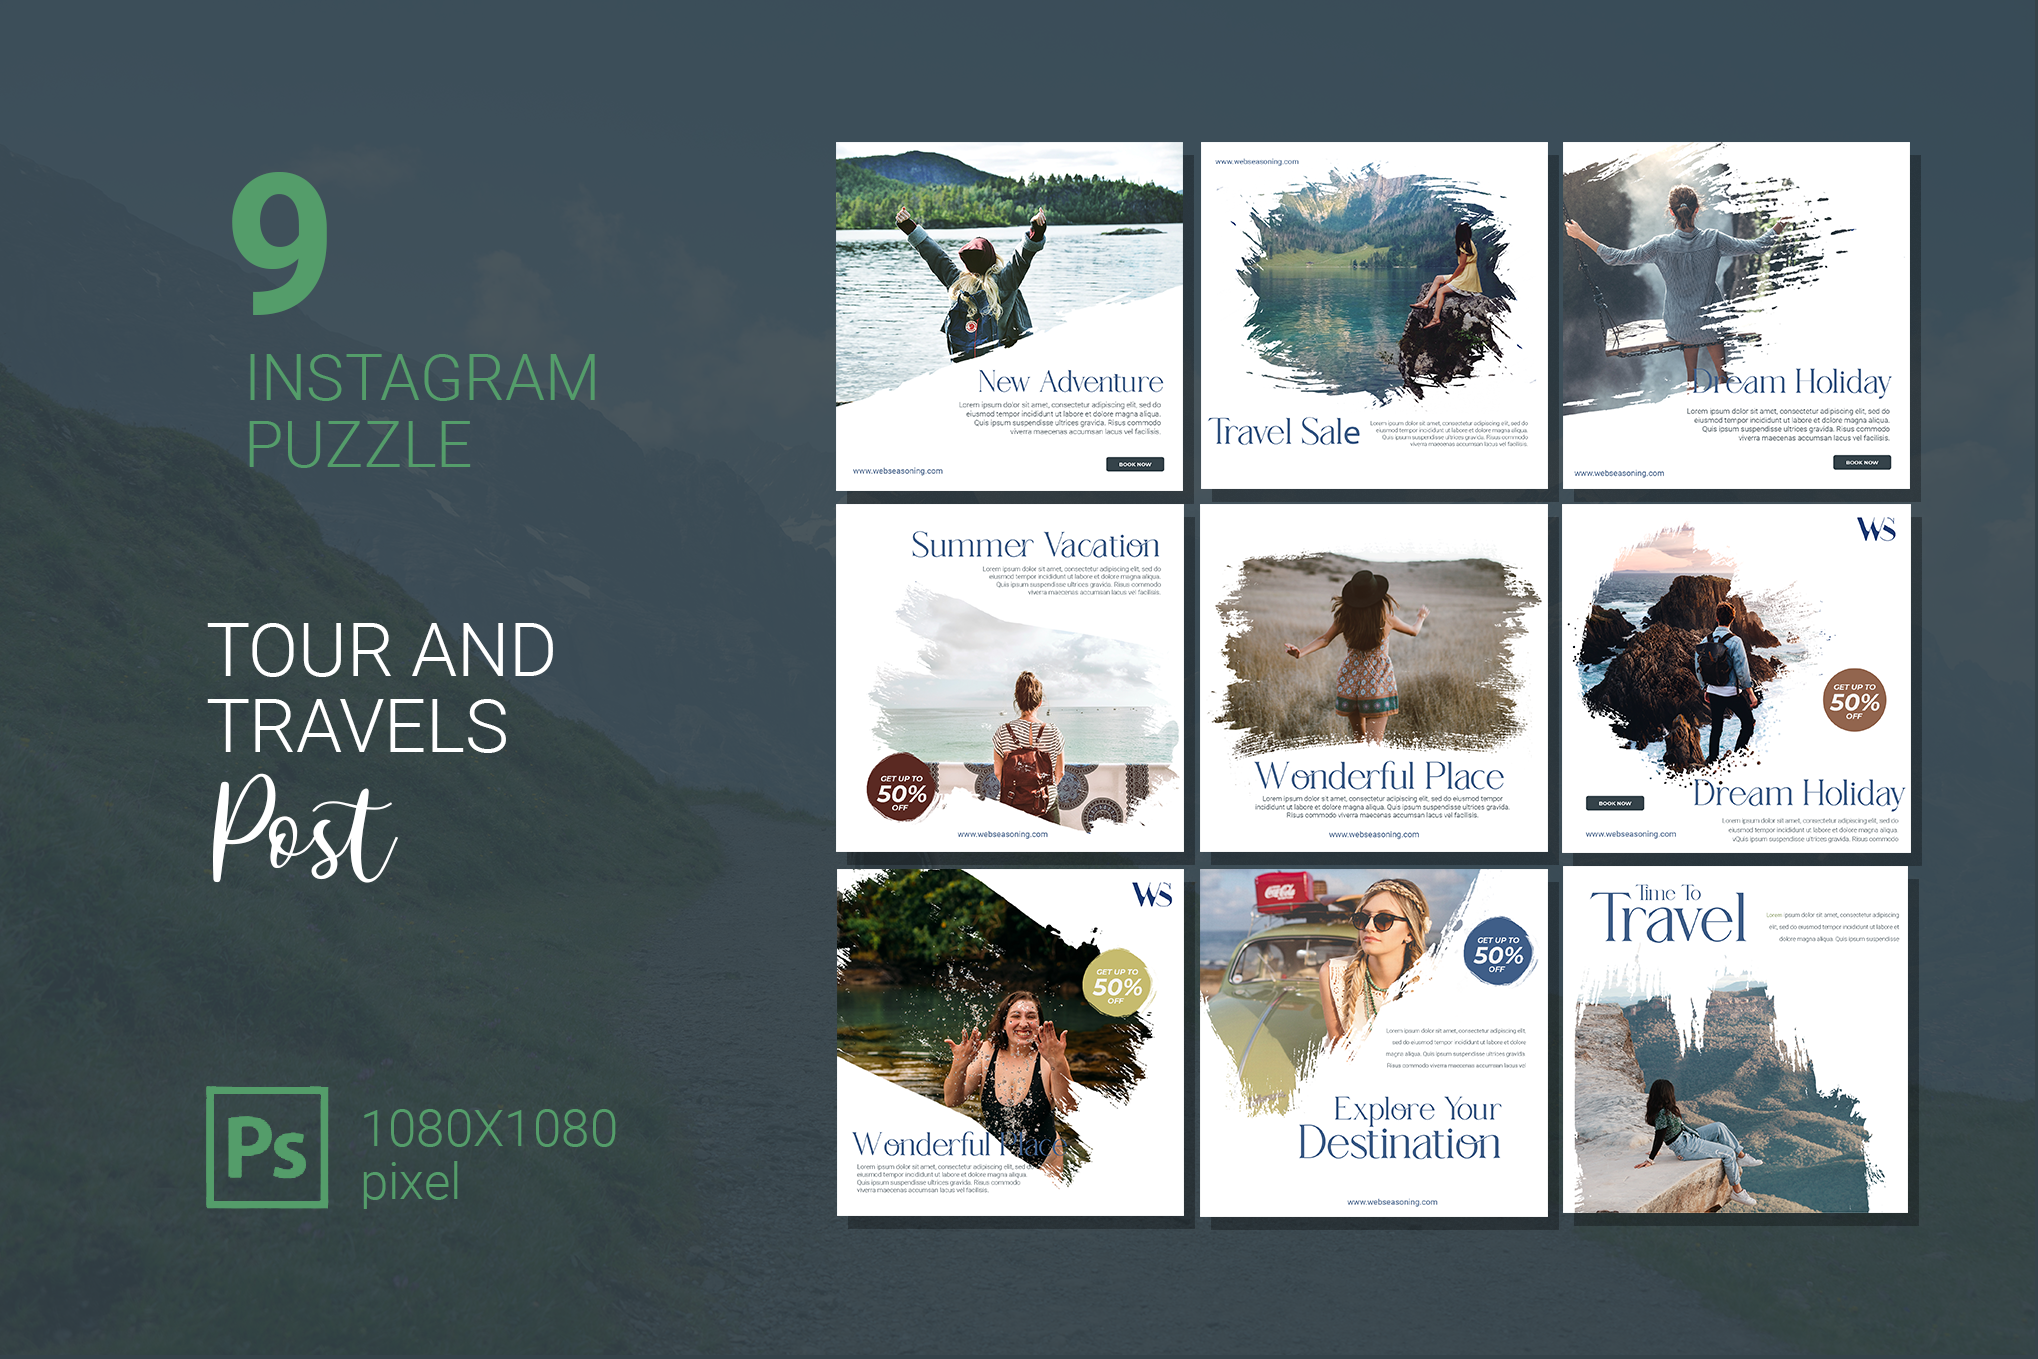 Tour and Travels Instagram Puzzle